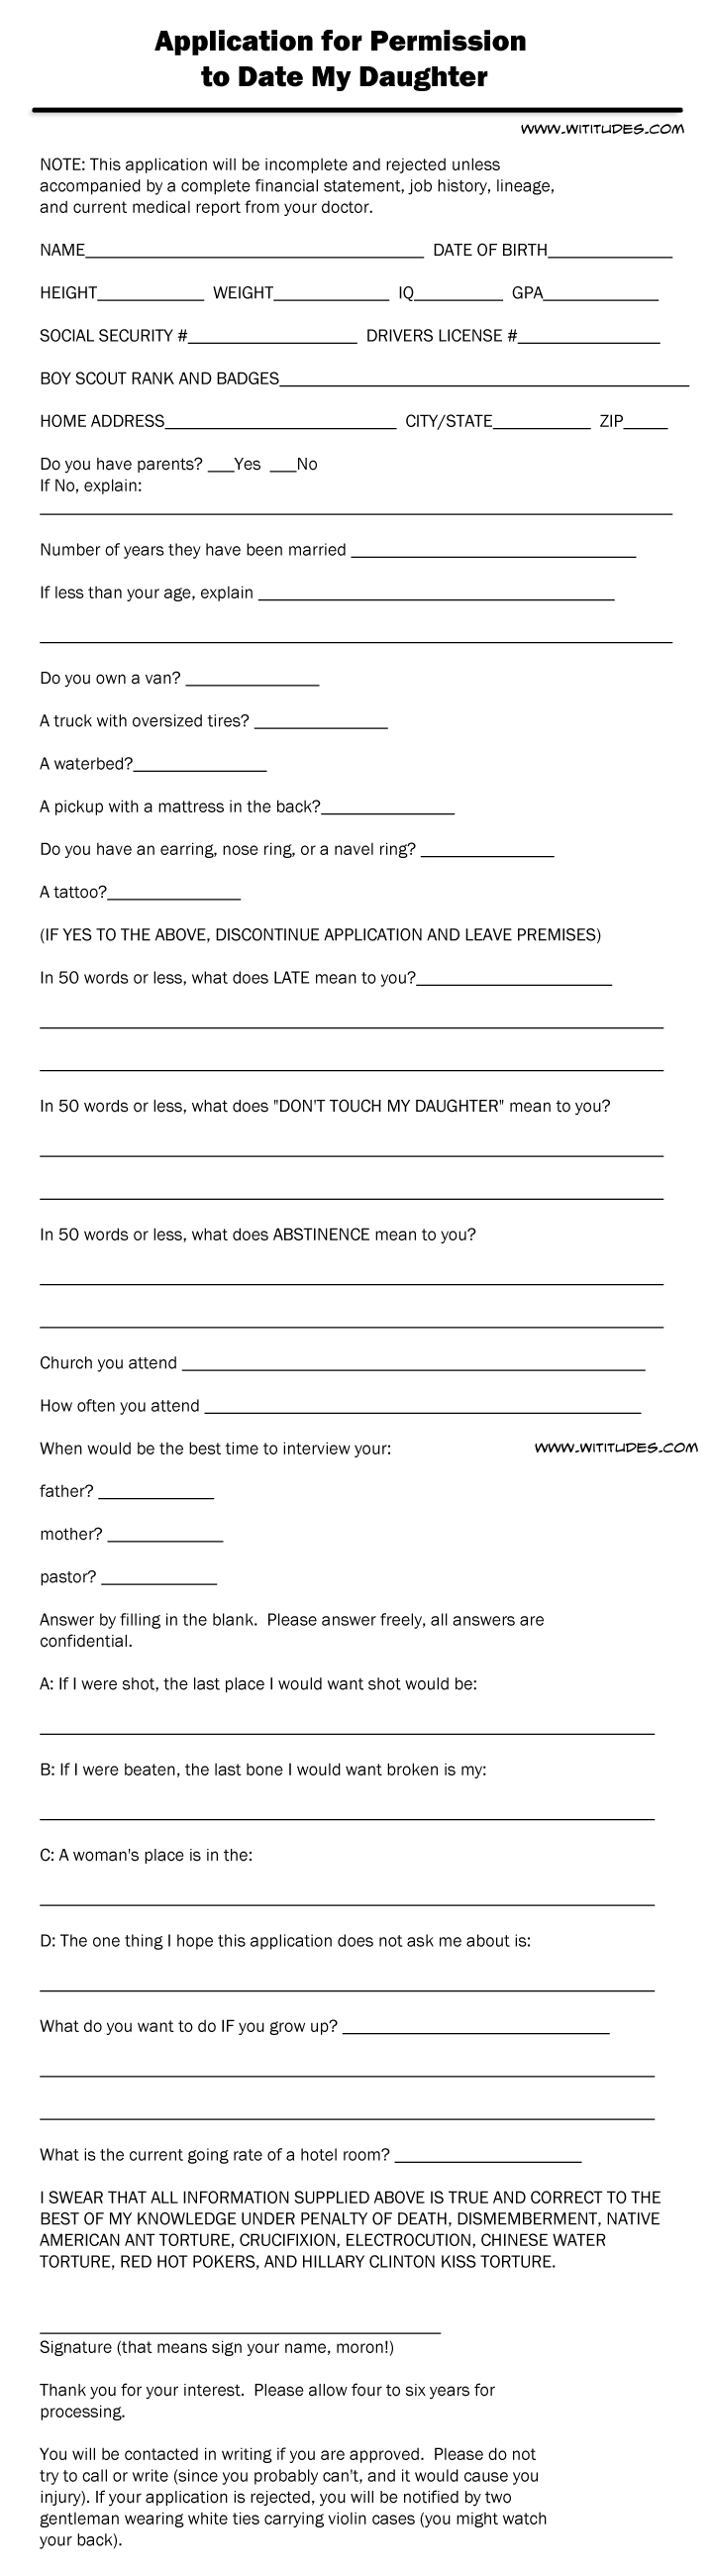 Application for dating my daughter in Brisbane